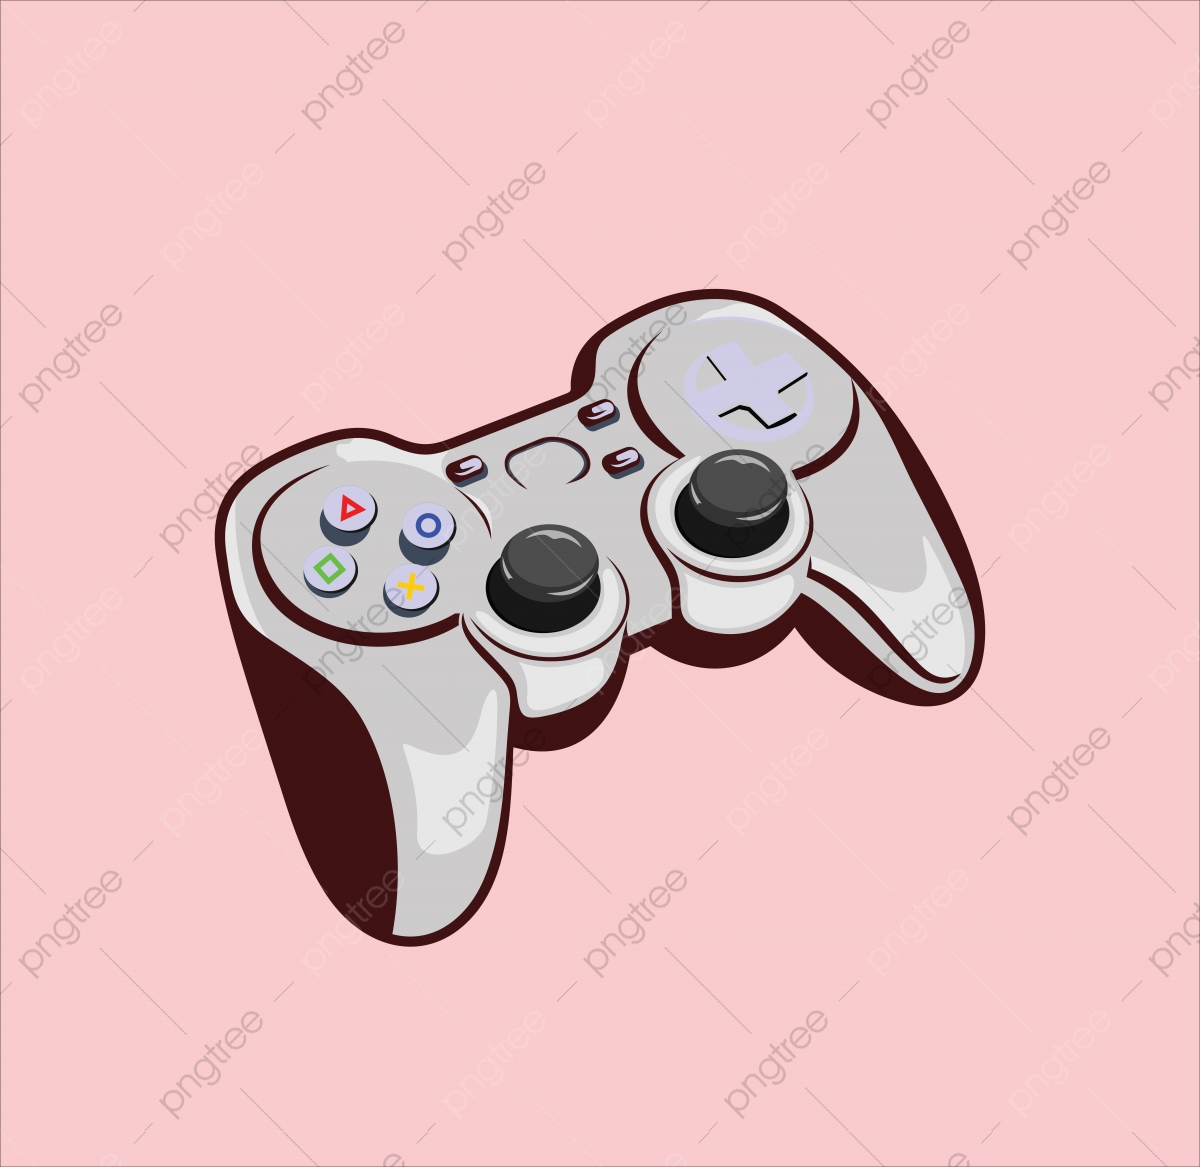 Game Stick Logo Game Icons Logo Icons Symbol Png And Vector With Transparent Background For Free Download